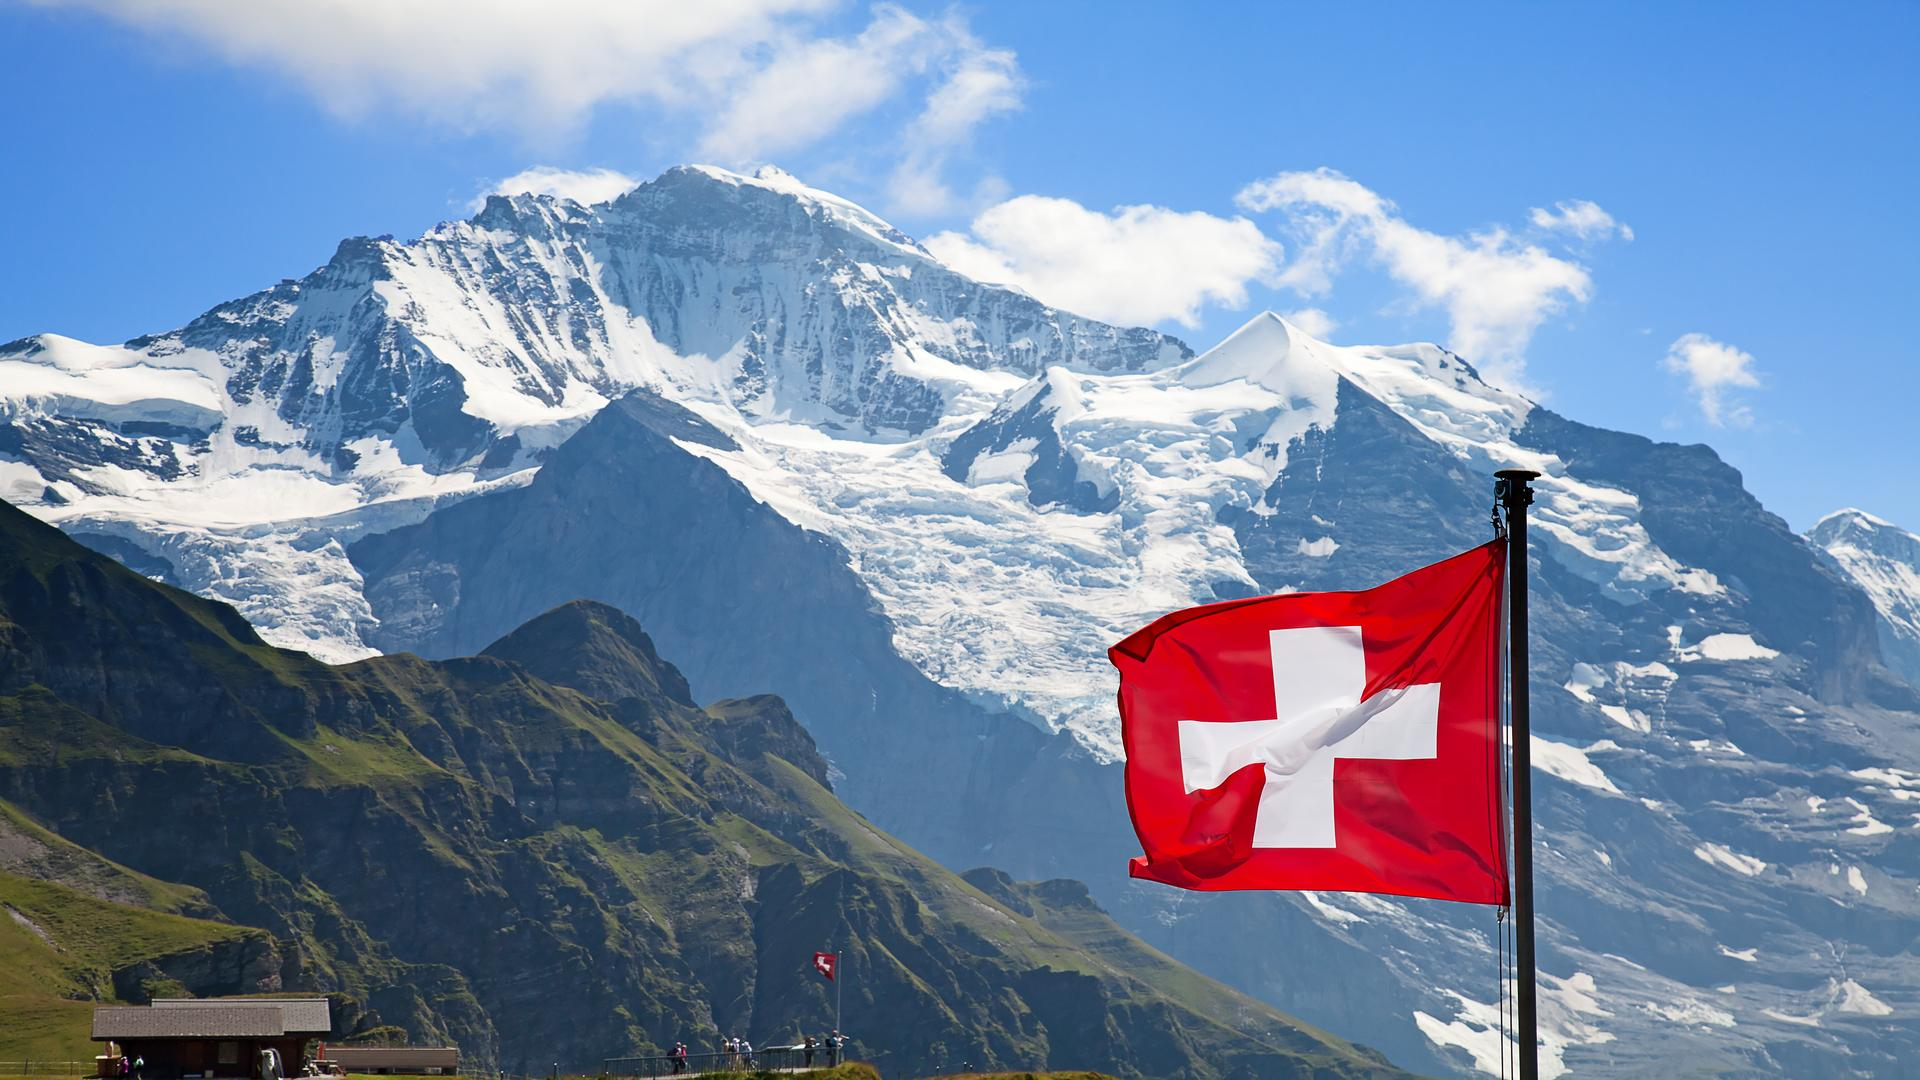 Names that will stay in the history of Switzerland forever